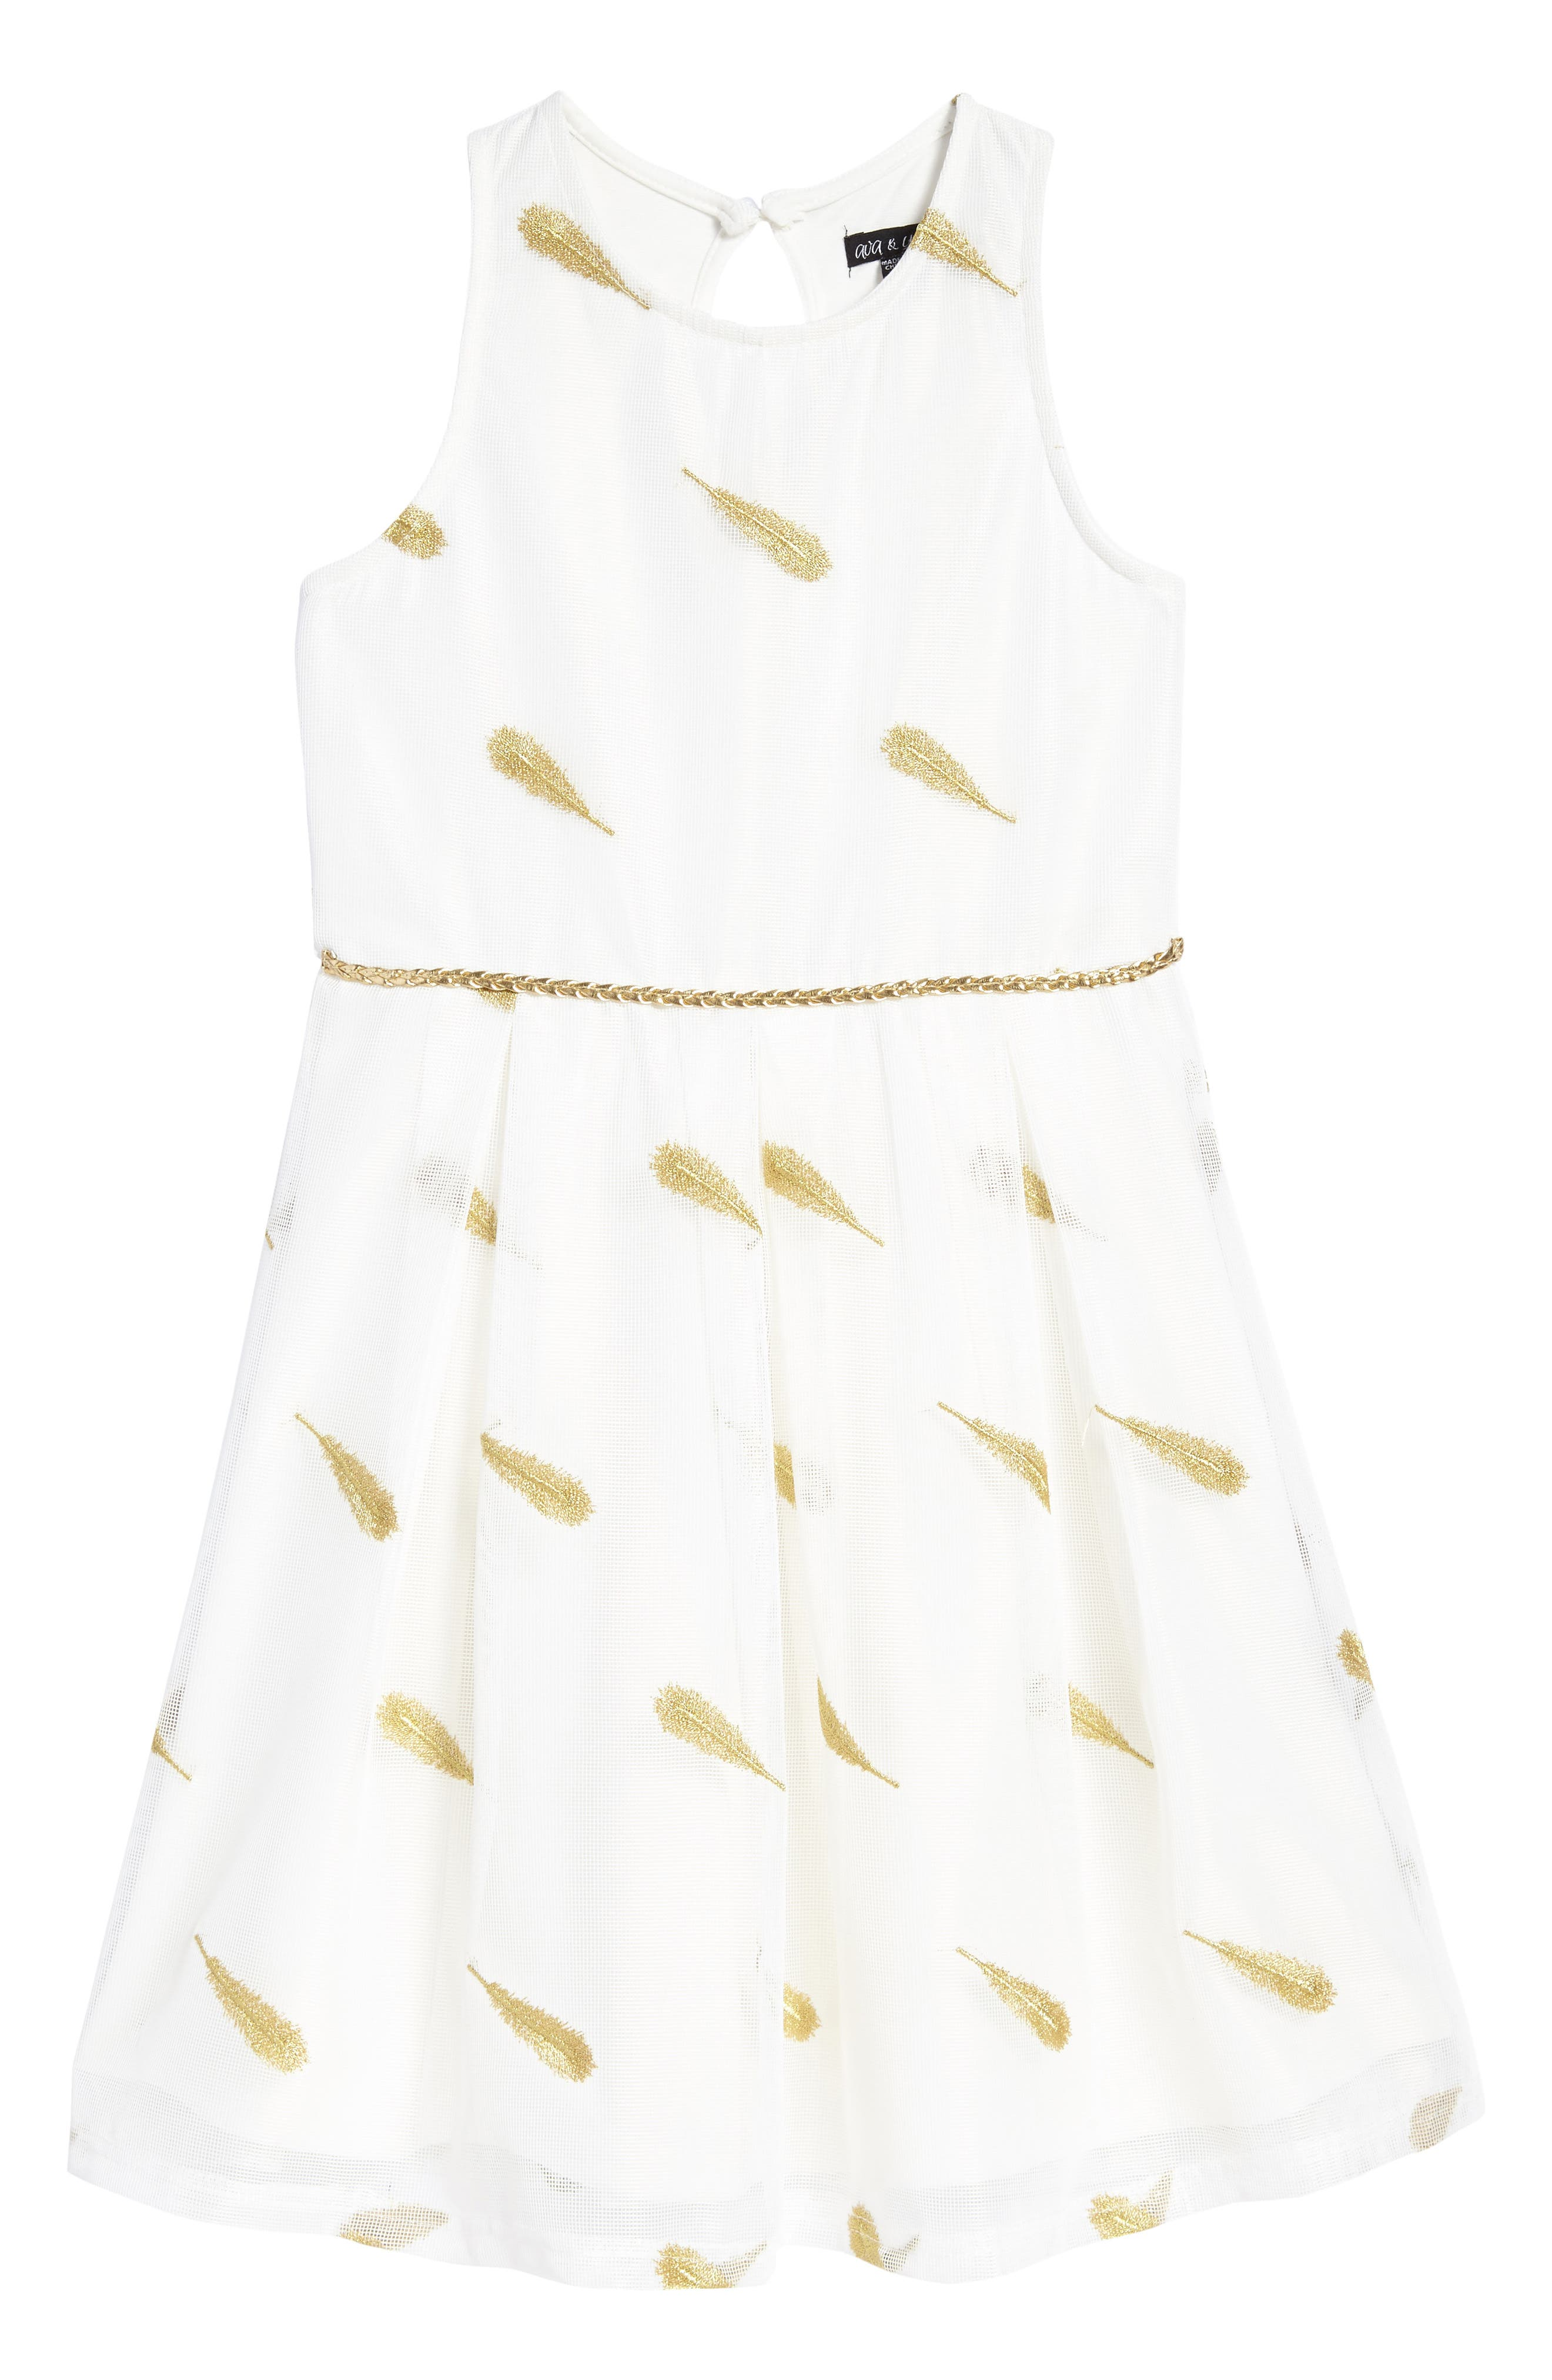 Alternate Image 1 Selected - Ava & Yelly Feather Embroidered Dress (Big Girls)